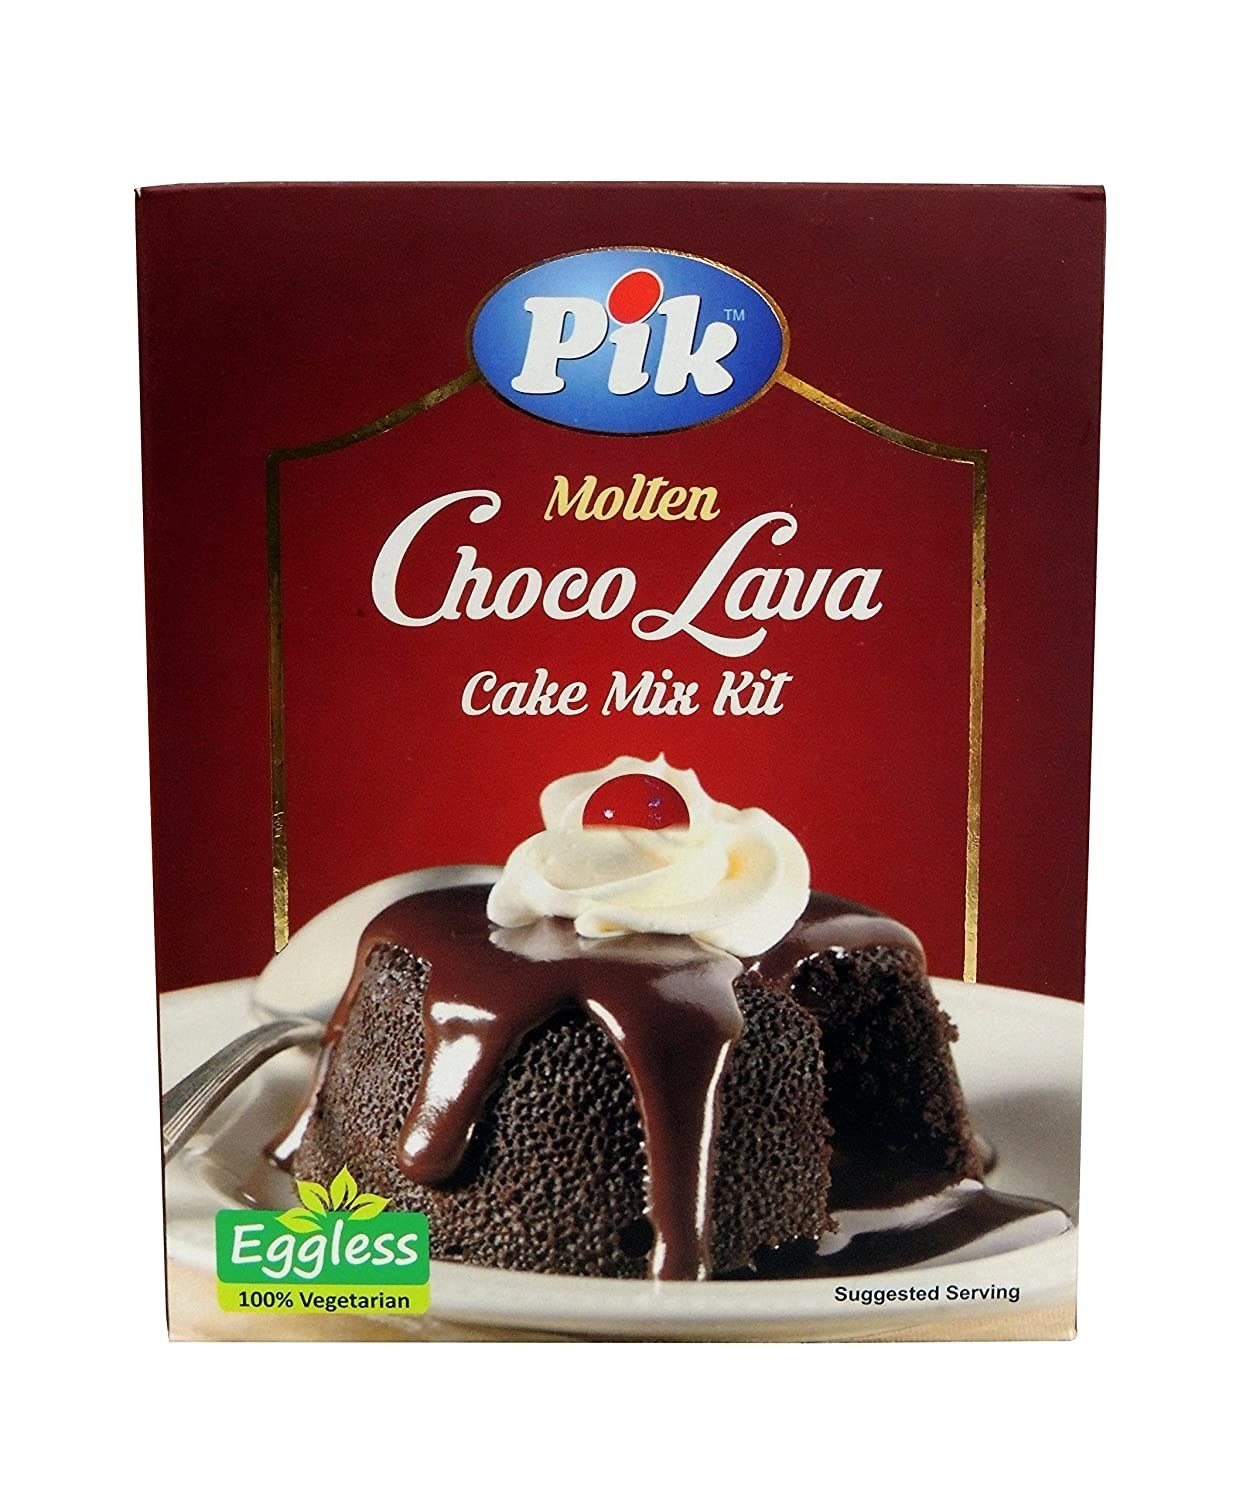 Molten chocolate lava cake box